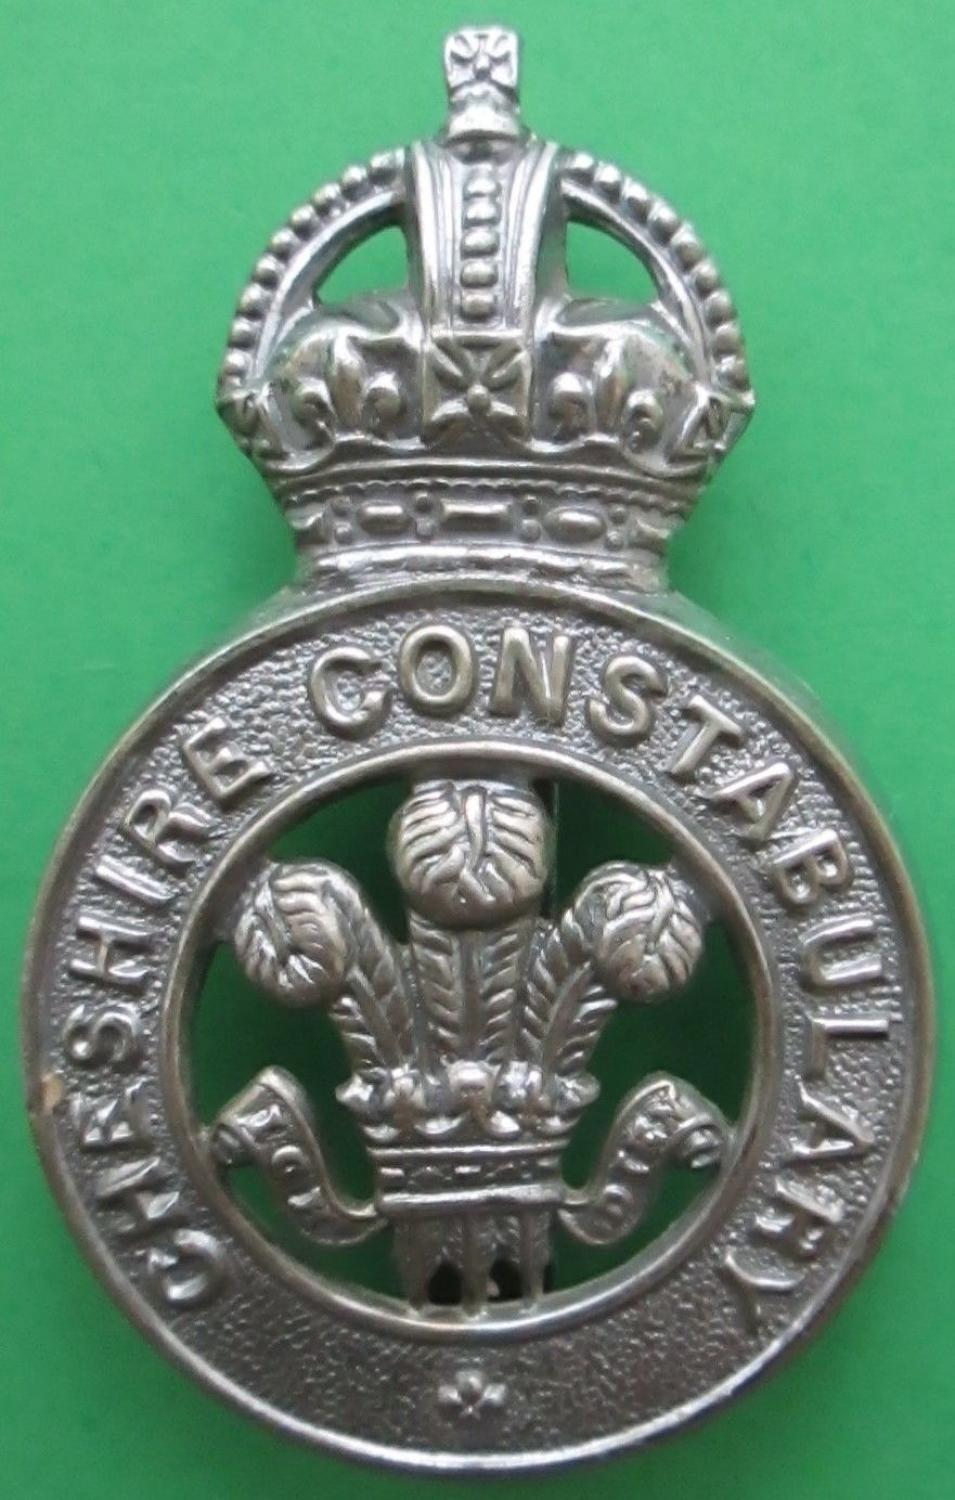 A POLICE BADGE FOR THE CHESHIRE CONSTABULARY